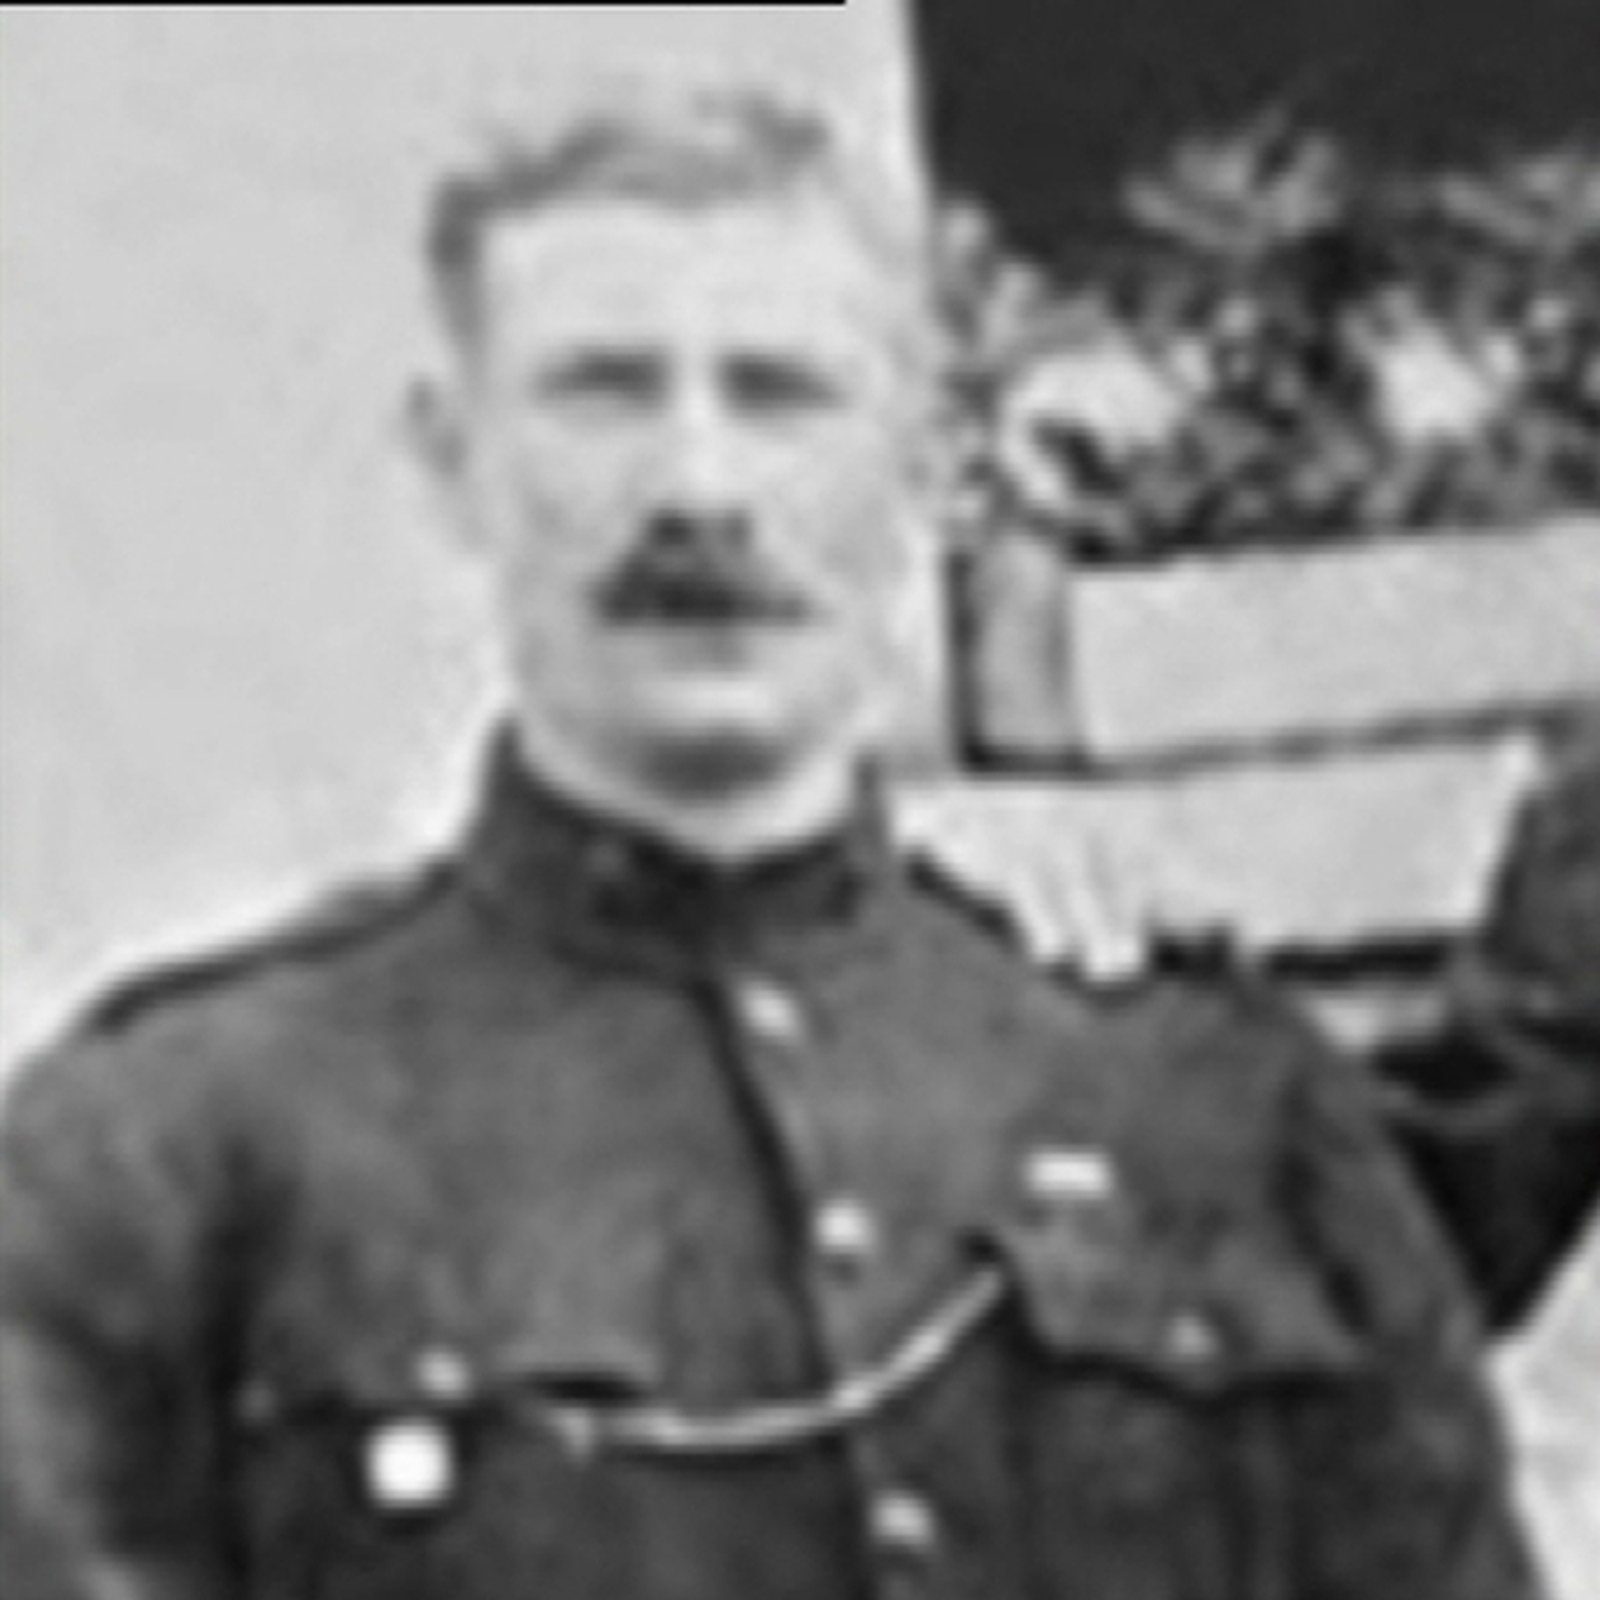 Image - Constable James McDonnell